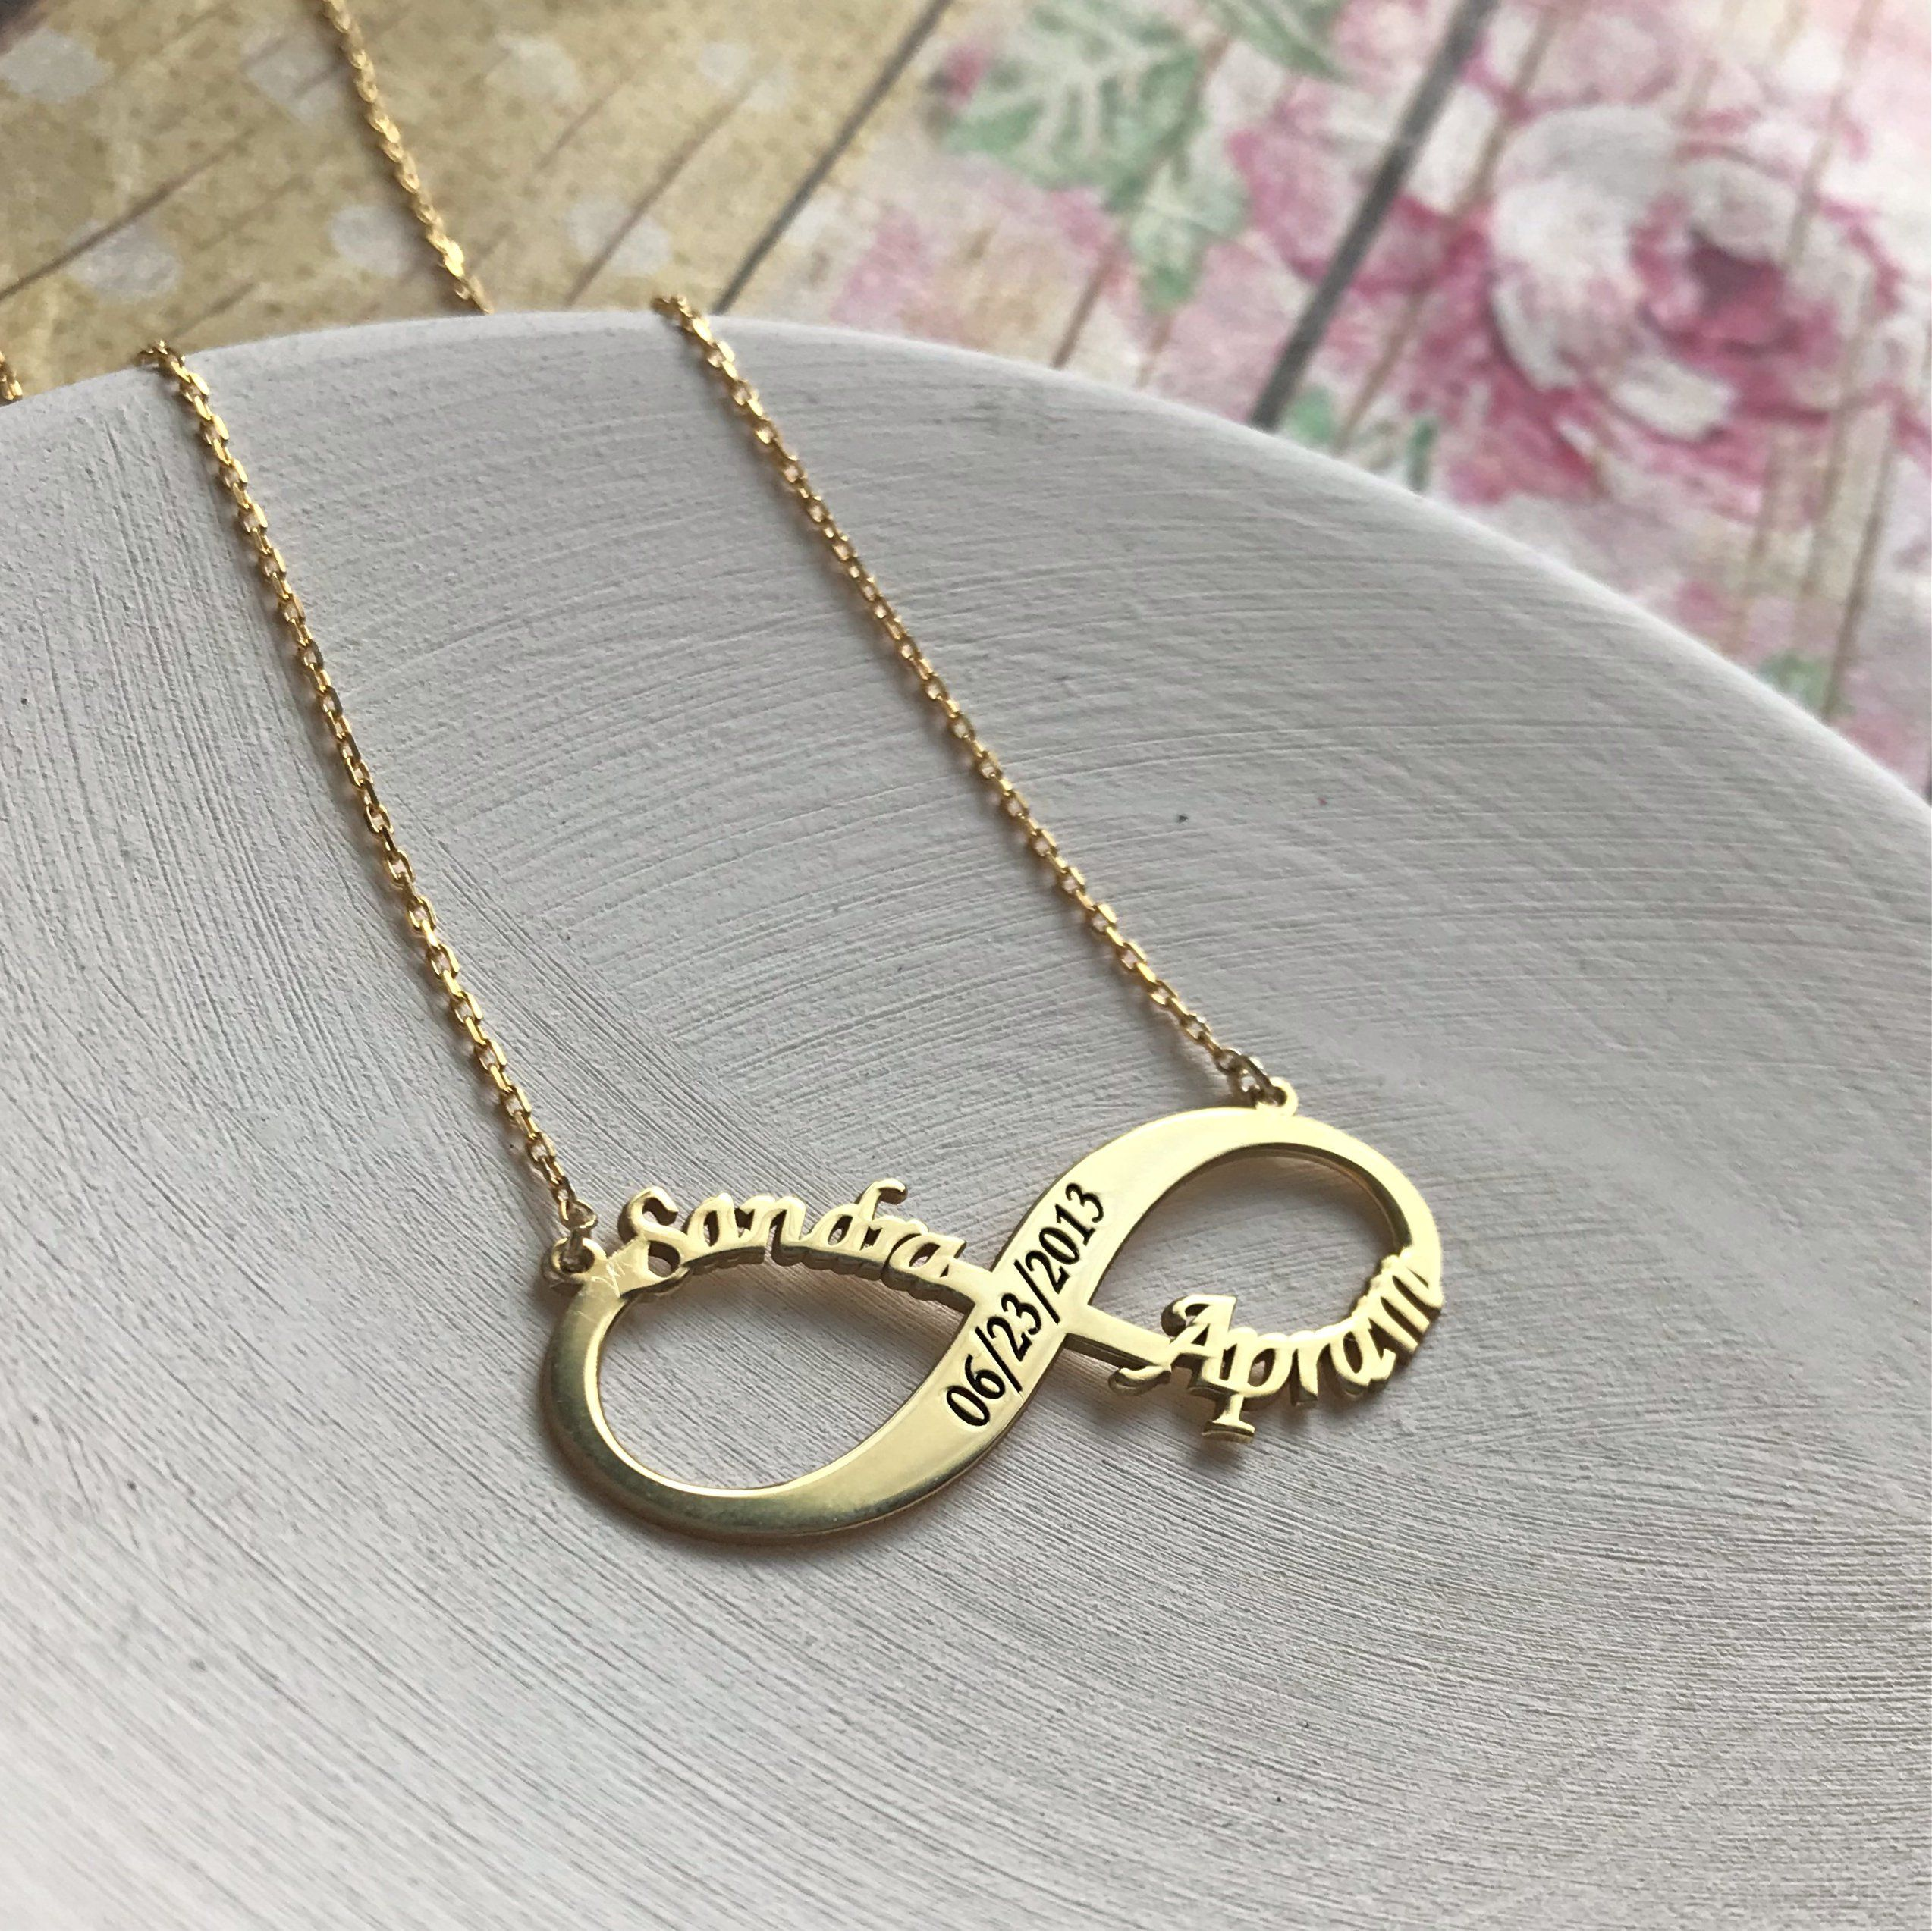 0b7e19a6614b6 Gold Personalized Infinity Necklace, Custom Infinity Necklace, Name ...